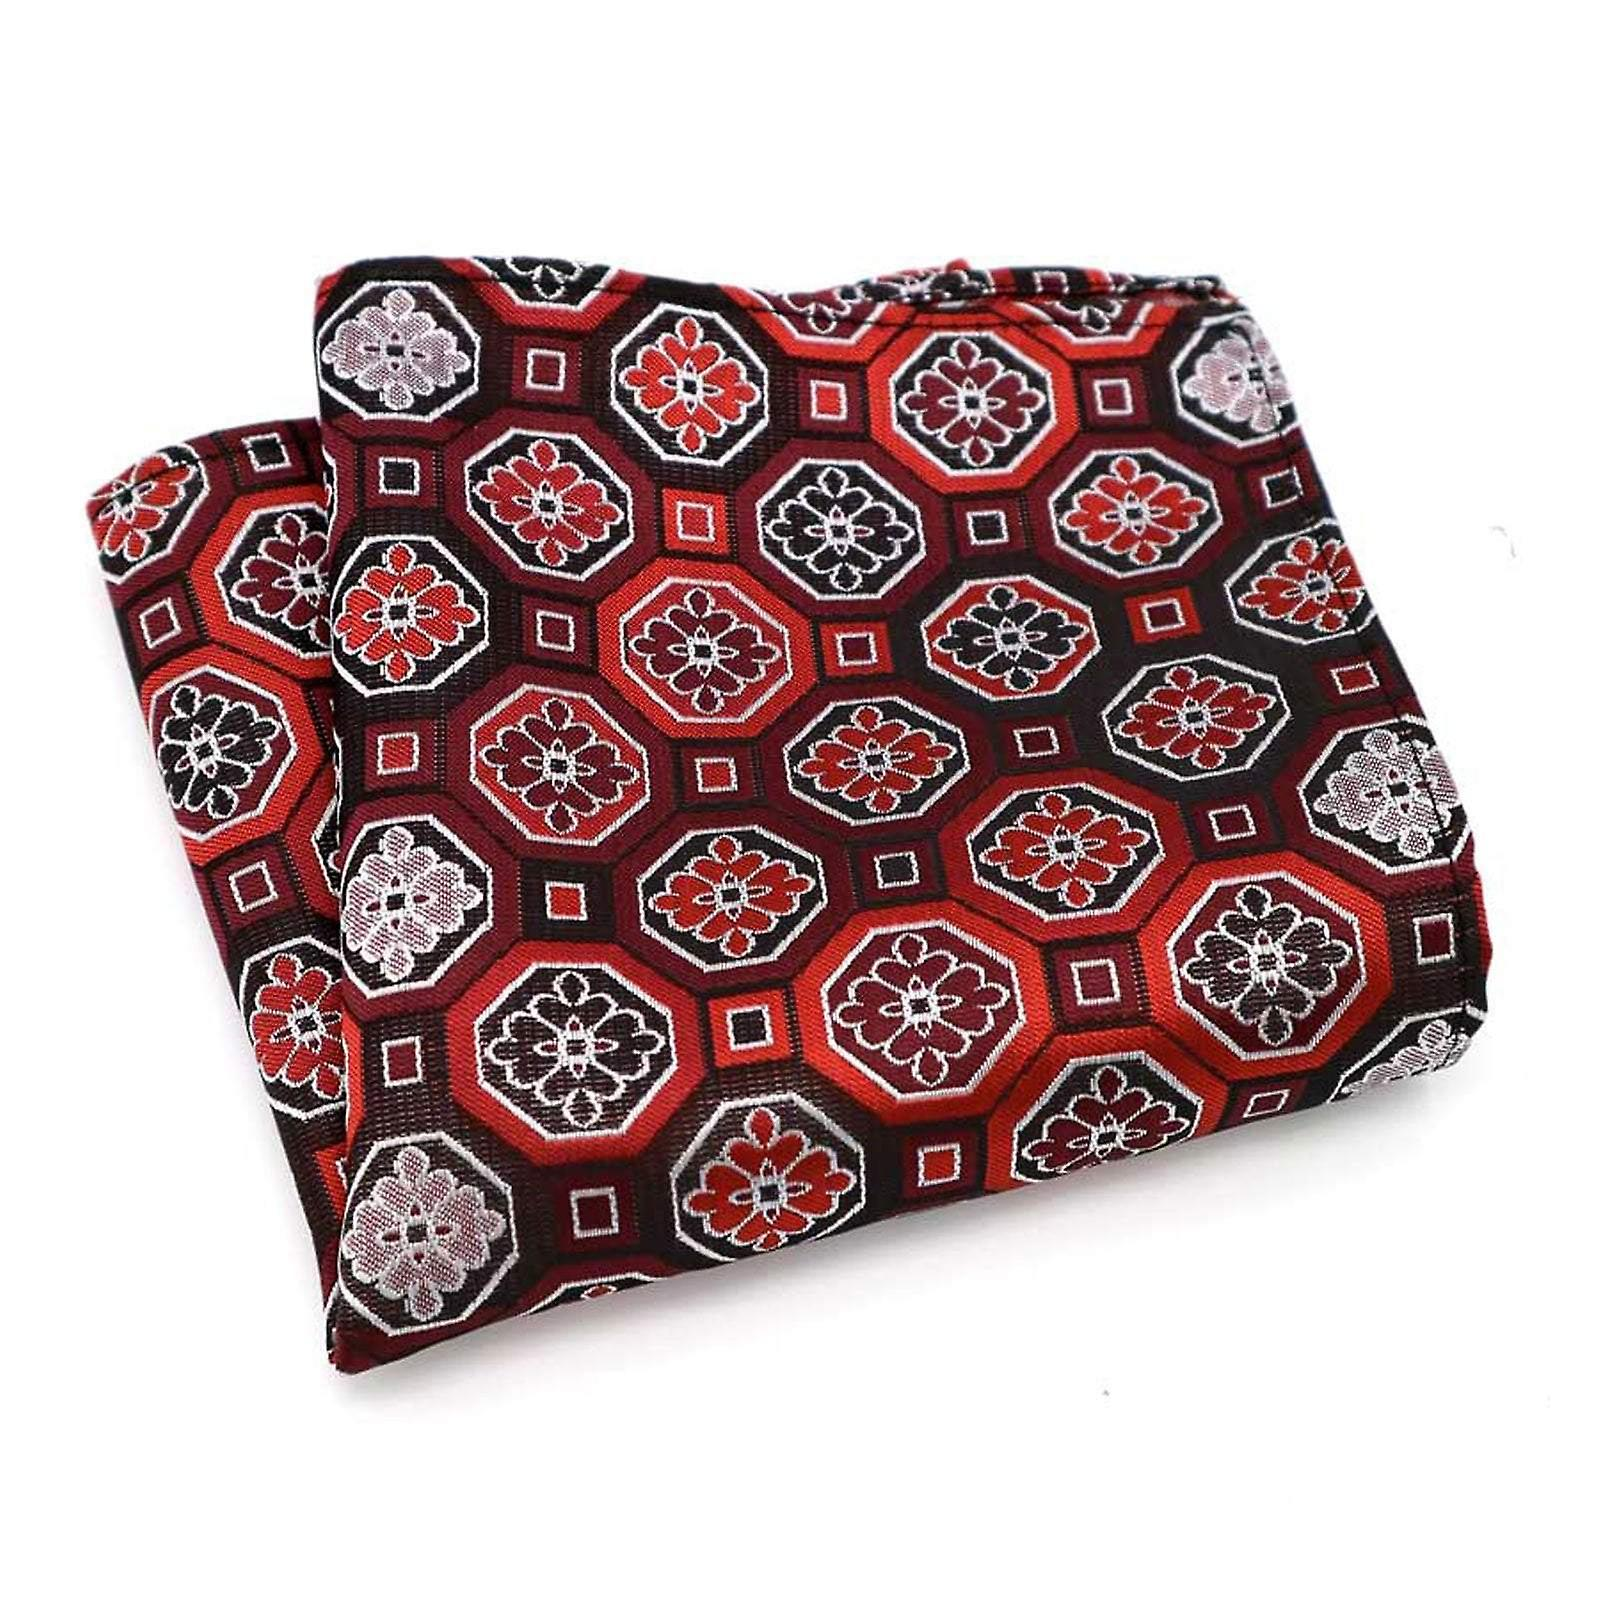 Red geo pattern men's handkerchief party pocket square